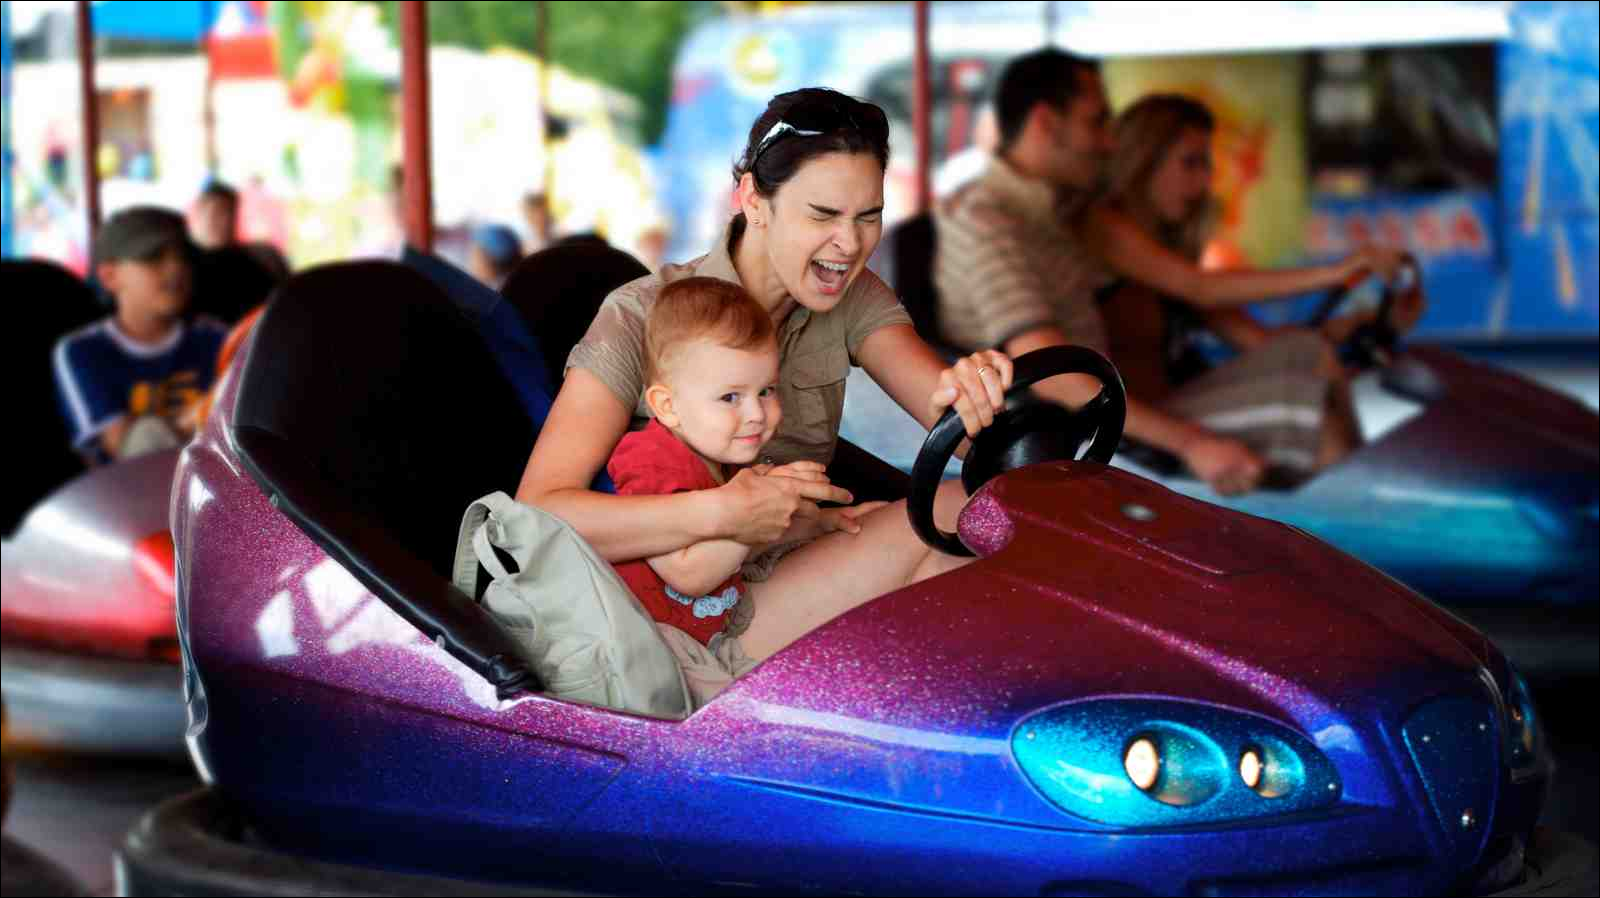 mother and toddler in bumper car at theme park